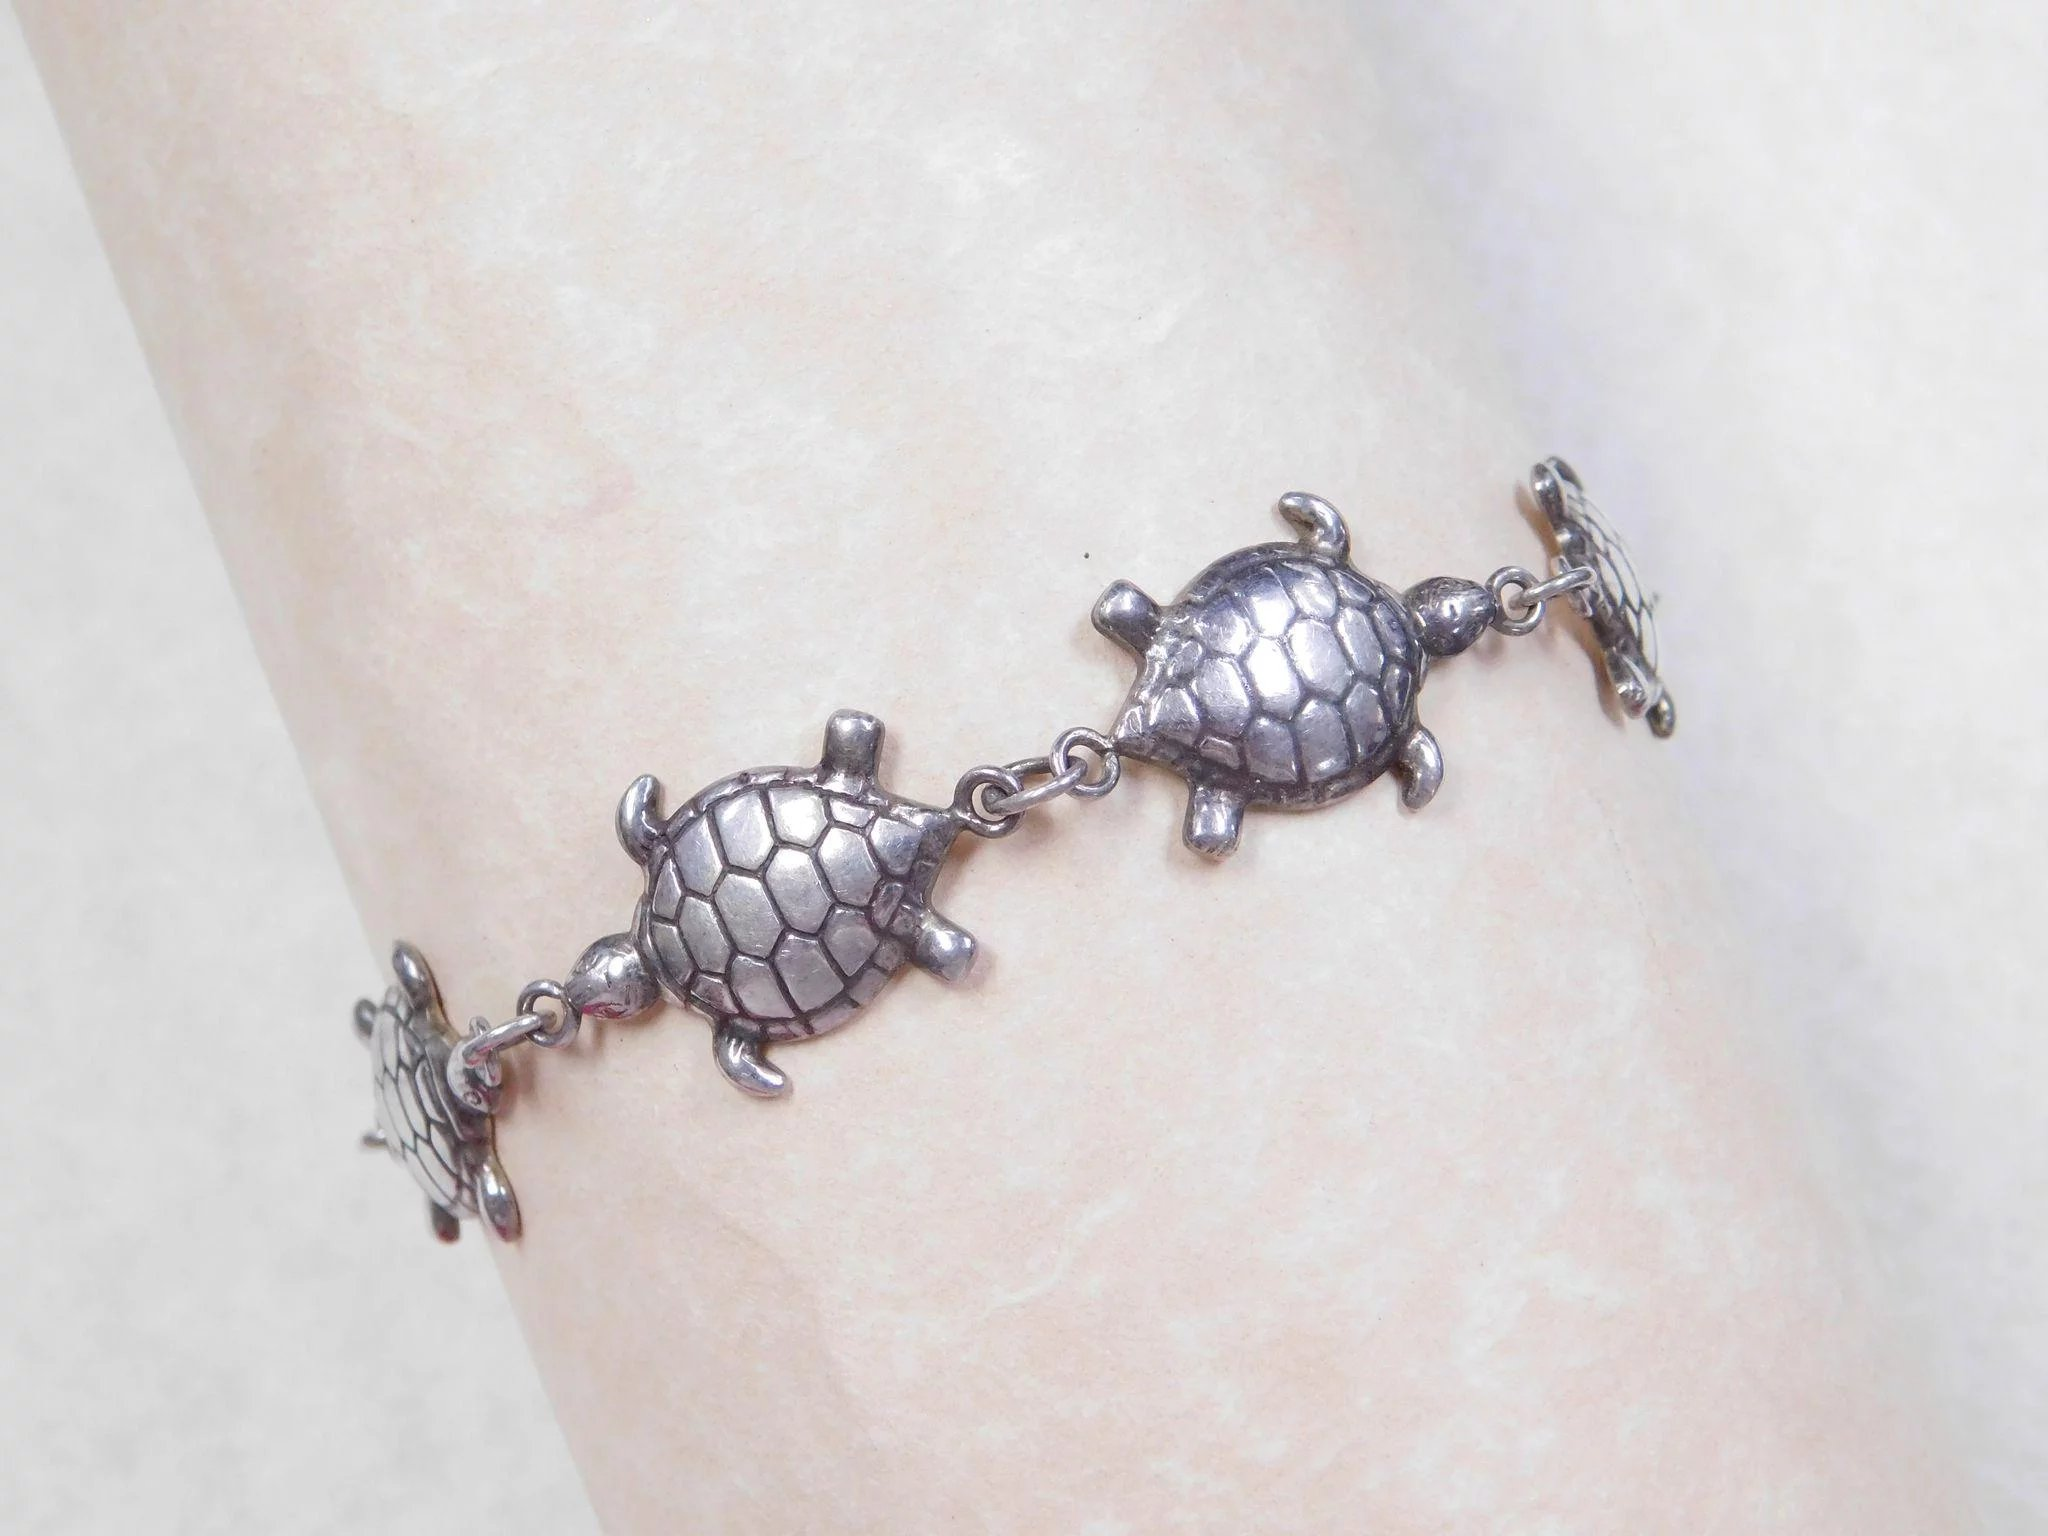 bead peace planet turtle bracelet things sea stone i love from full size p